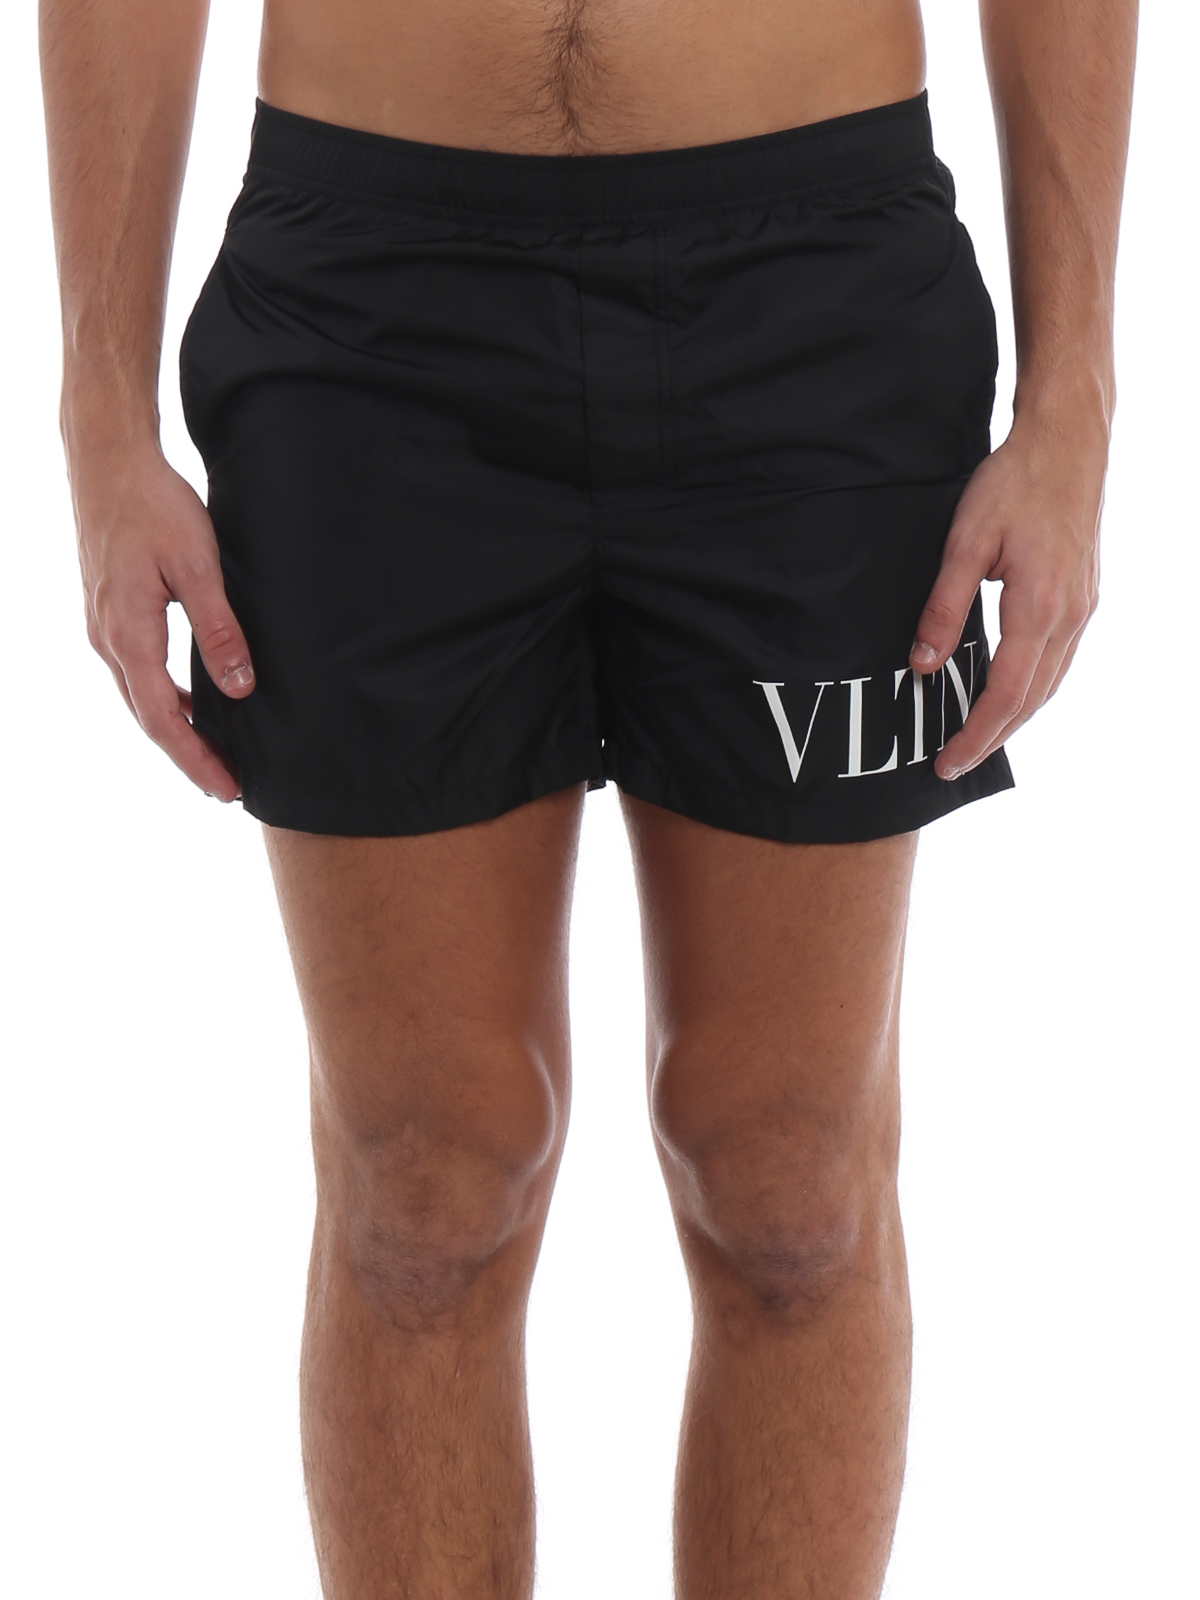 32e856b169ba4 iKRIX VALENTINO: Swim shorts & swimming trunks - VLTN black swim shorts